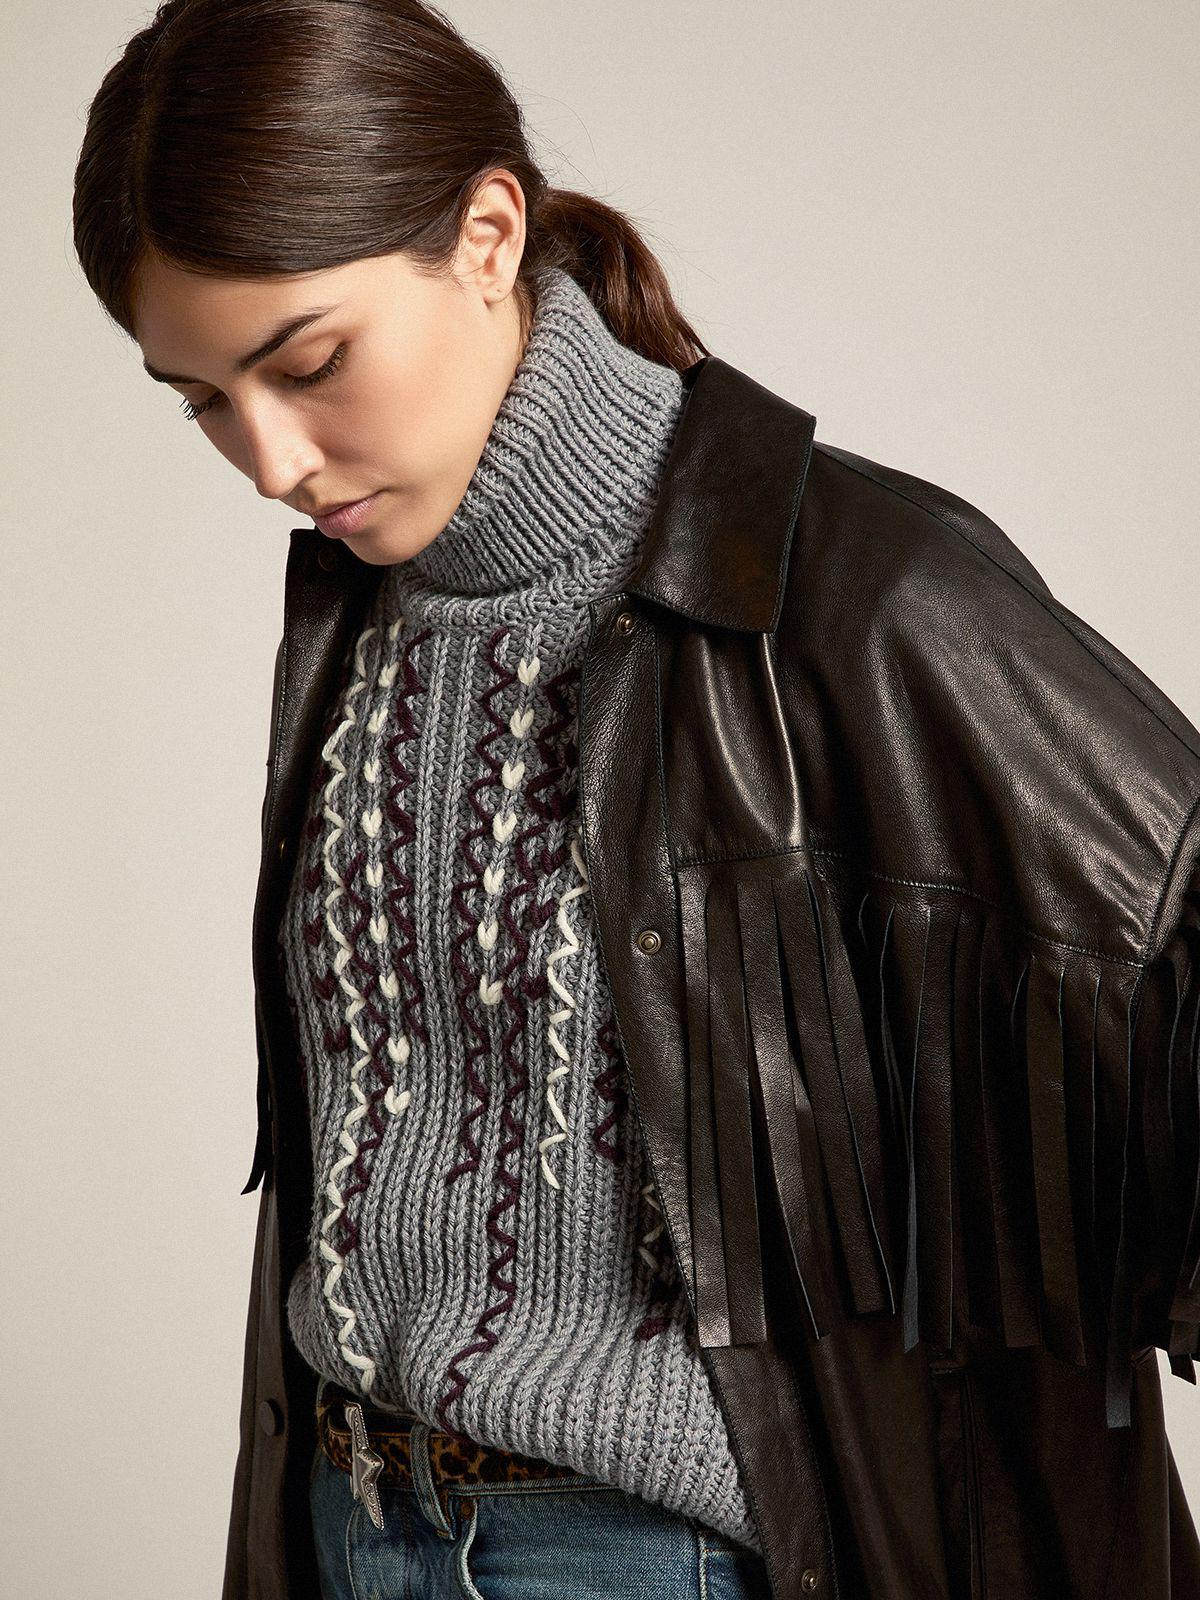 Oversize Journey Collection Darcie shirt in black nappa lambskin with fringes